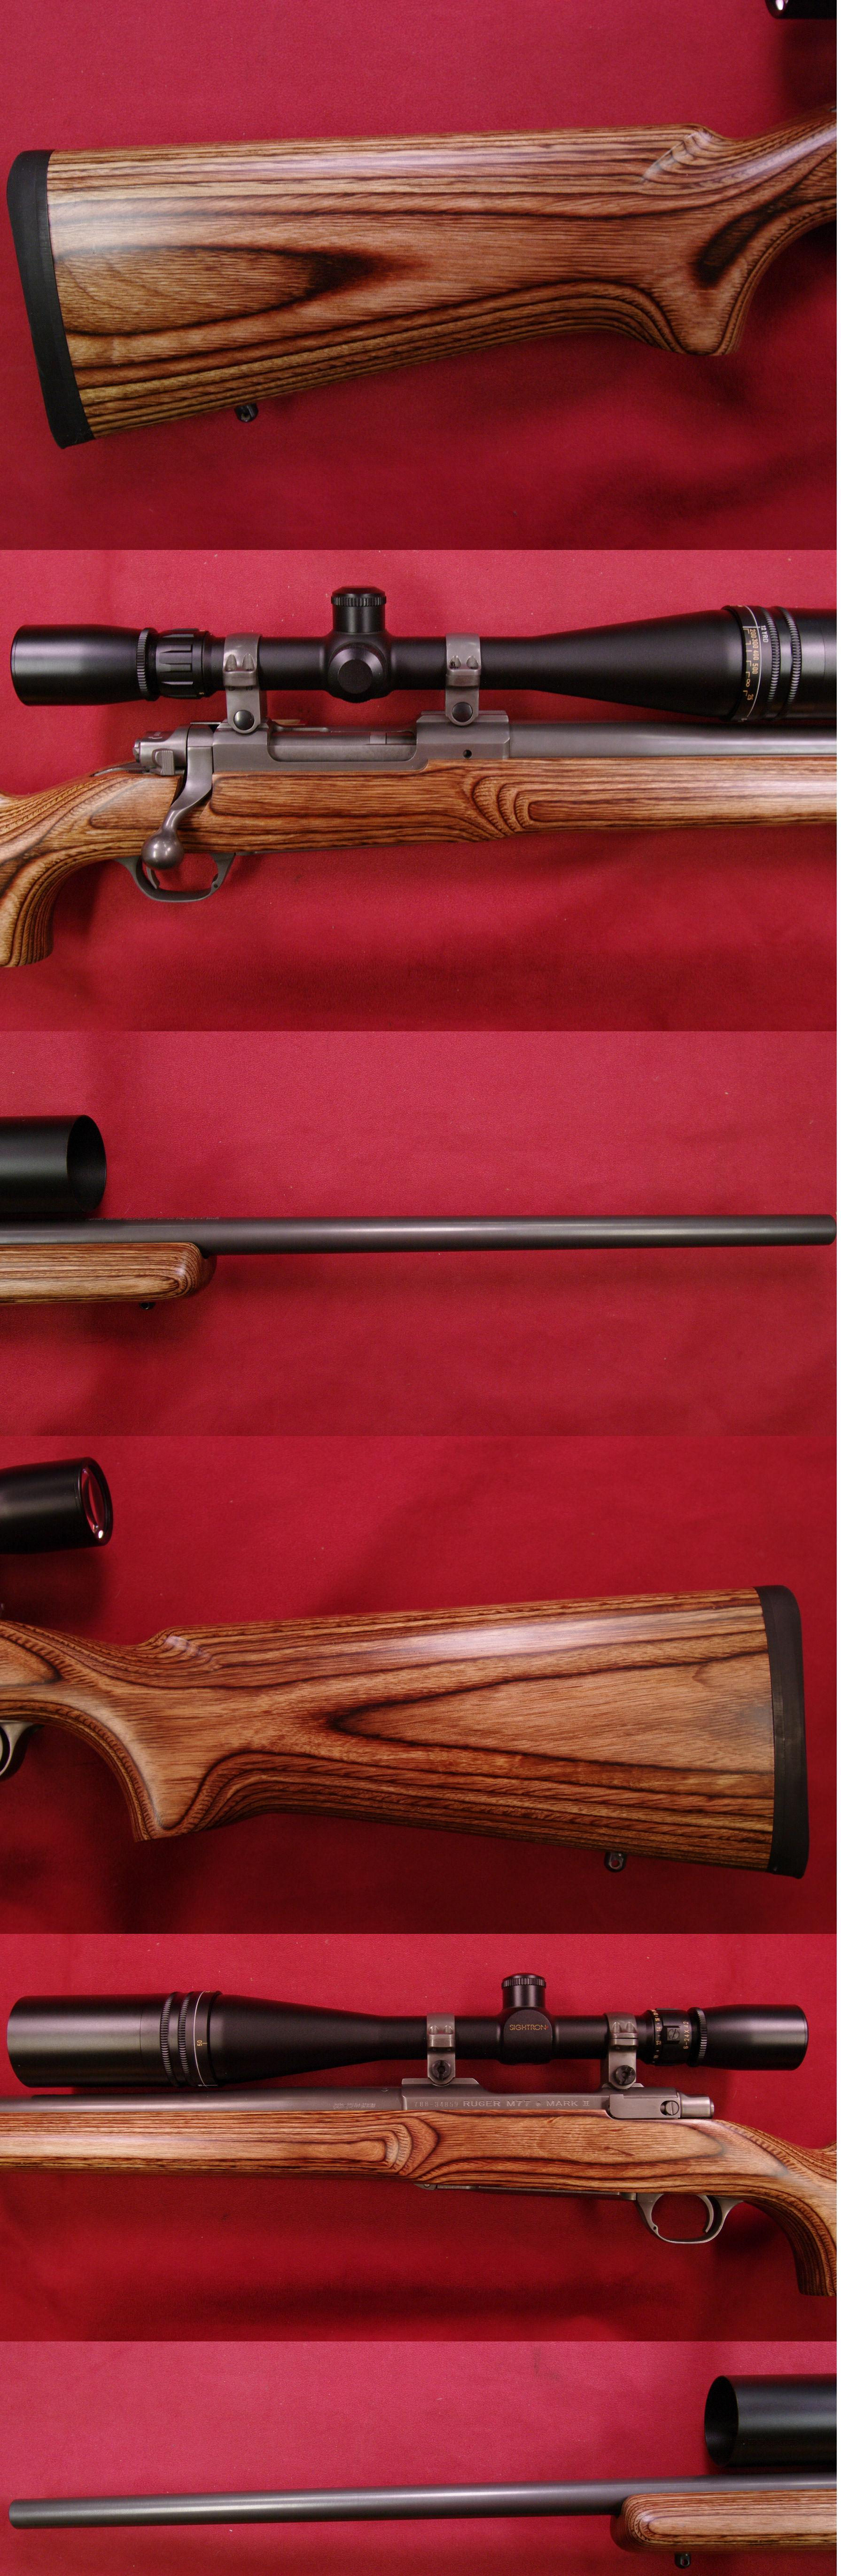 RUGER M77 Mark II  Target 22-250 Rem  Guns > Rifles > Ruger Rifles > Model 77